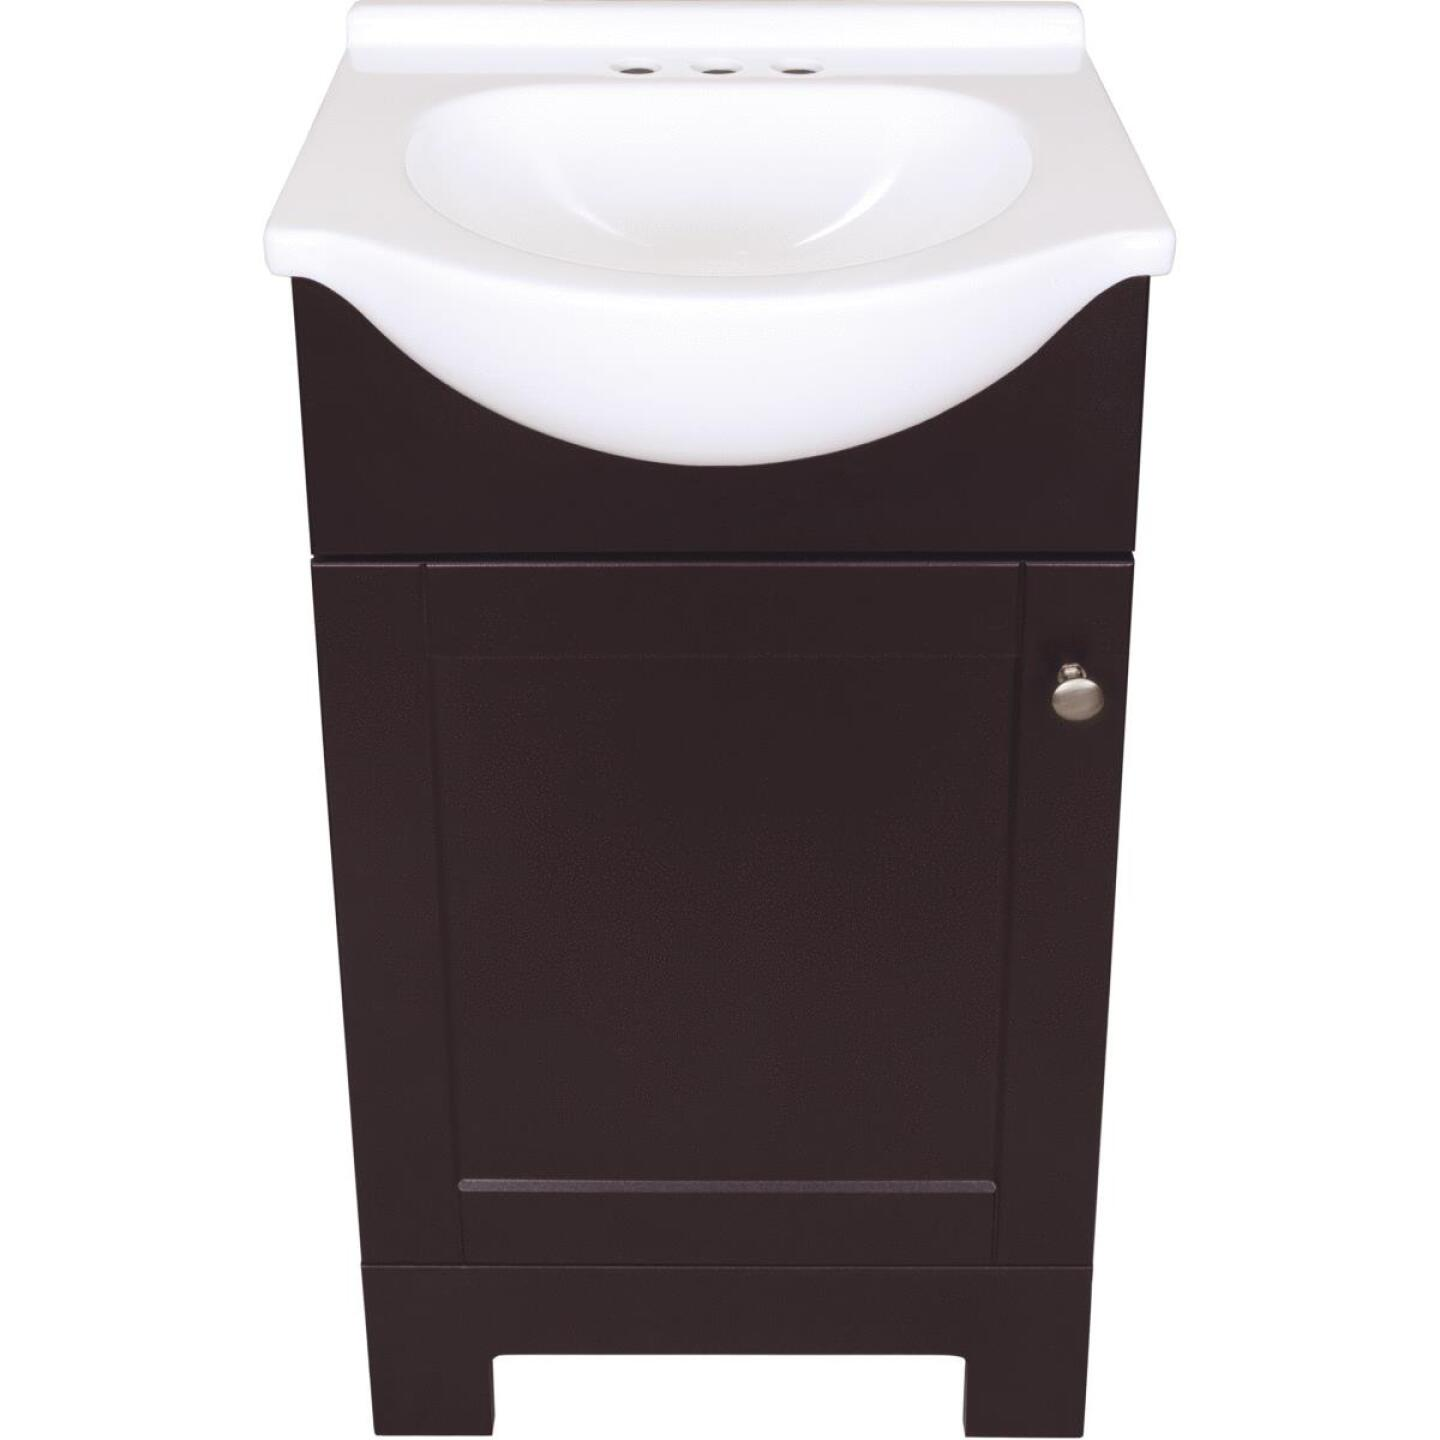 Continental Cabinets European Espresso 18 In. W x 33-1/2 In. H x 12-1/2 In. D Vanity with Cultured Marble Top Image 3